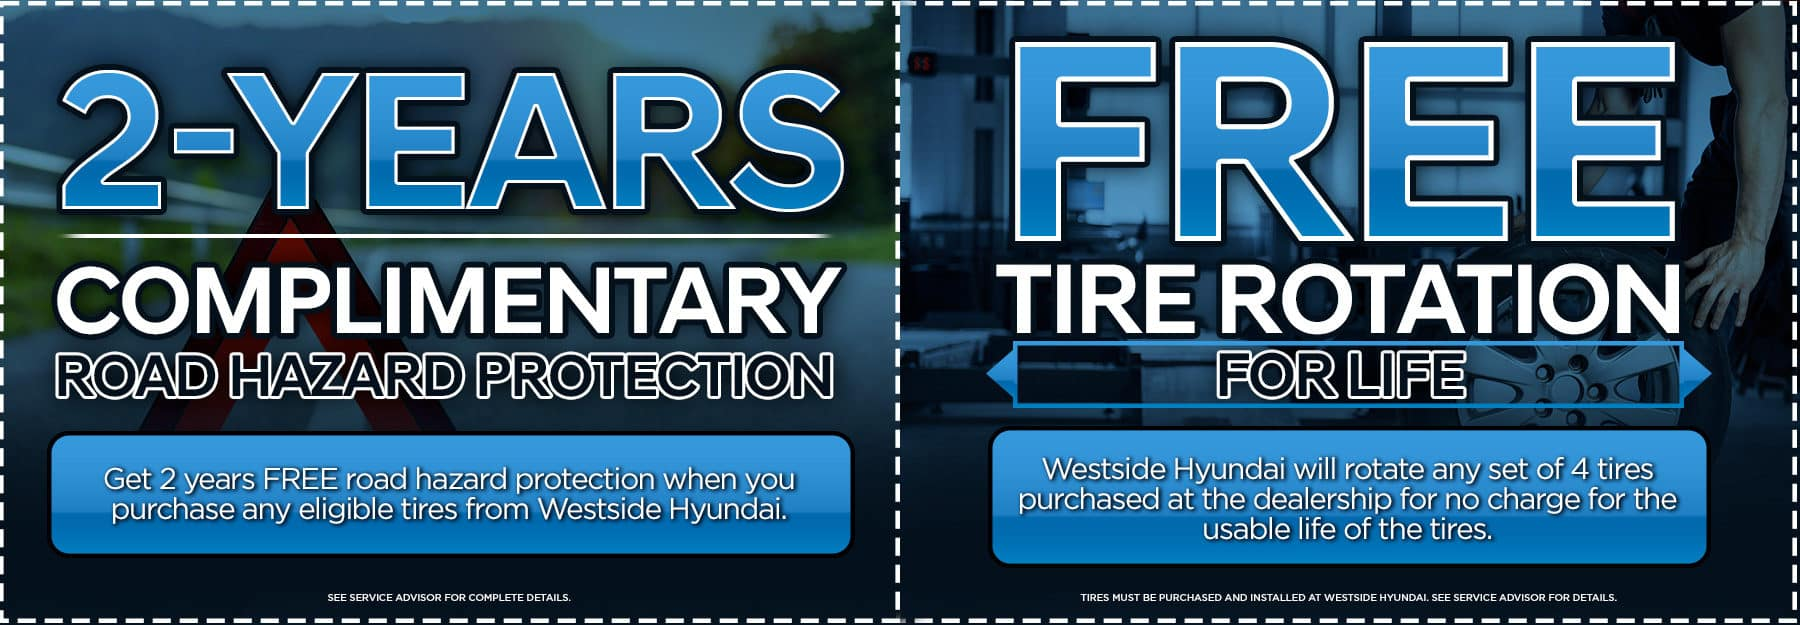 HNWH86899-01-June-Tire-Incentives-Slides-road-tire